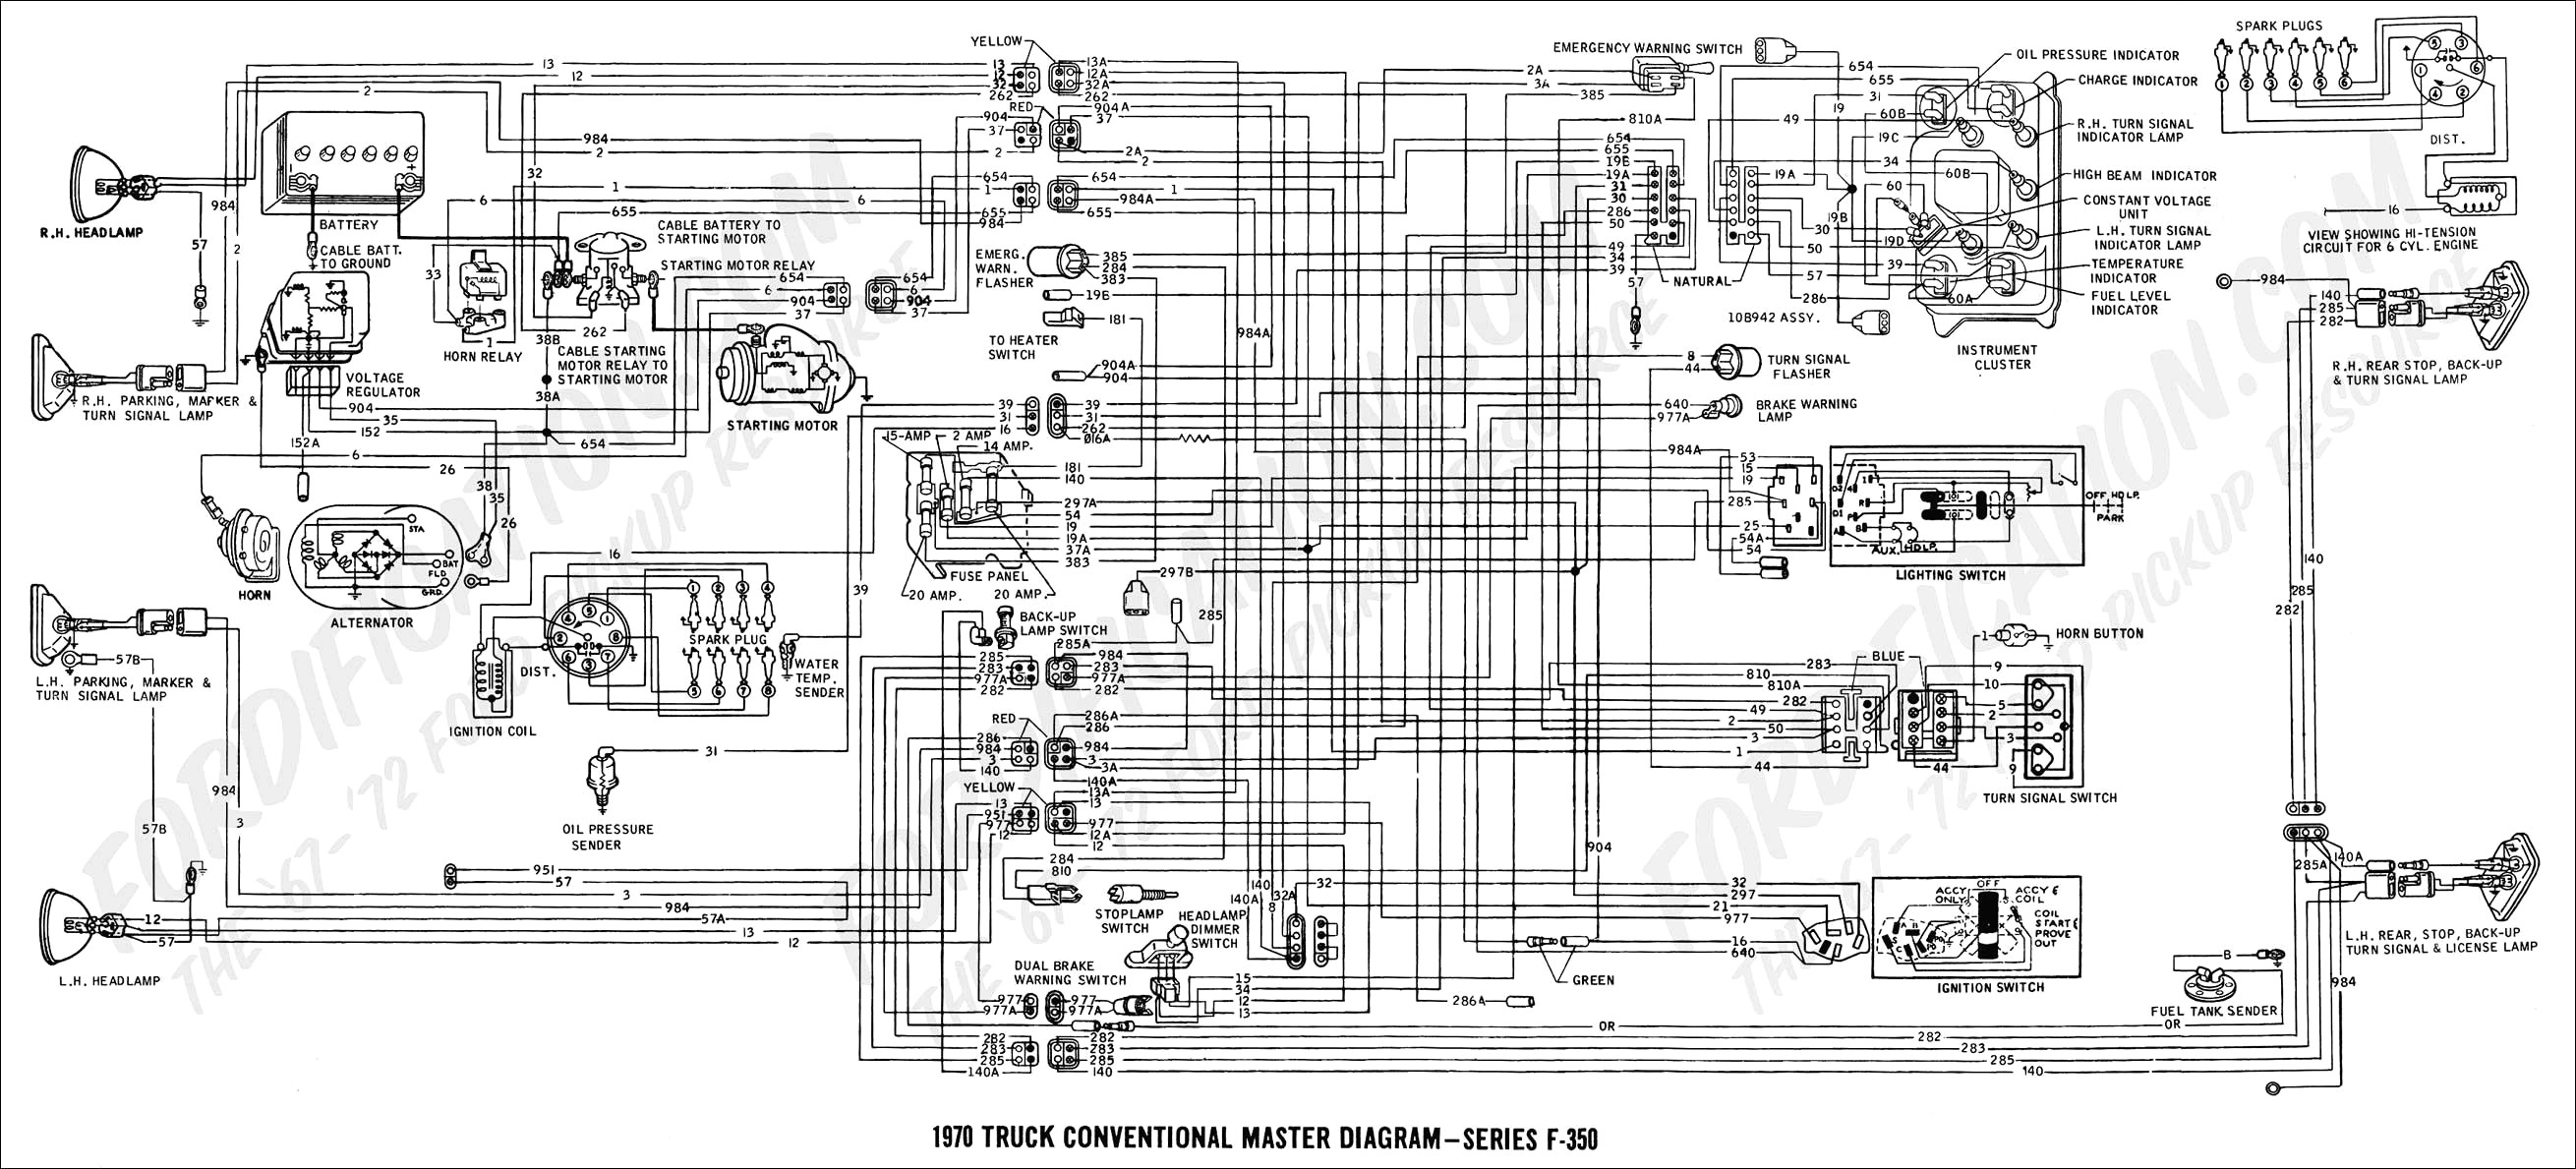 Wiring Diagram Fuse Box Ford With Radio 1986 F350 Free Diagrams For Trucks  Full